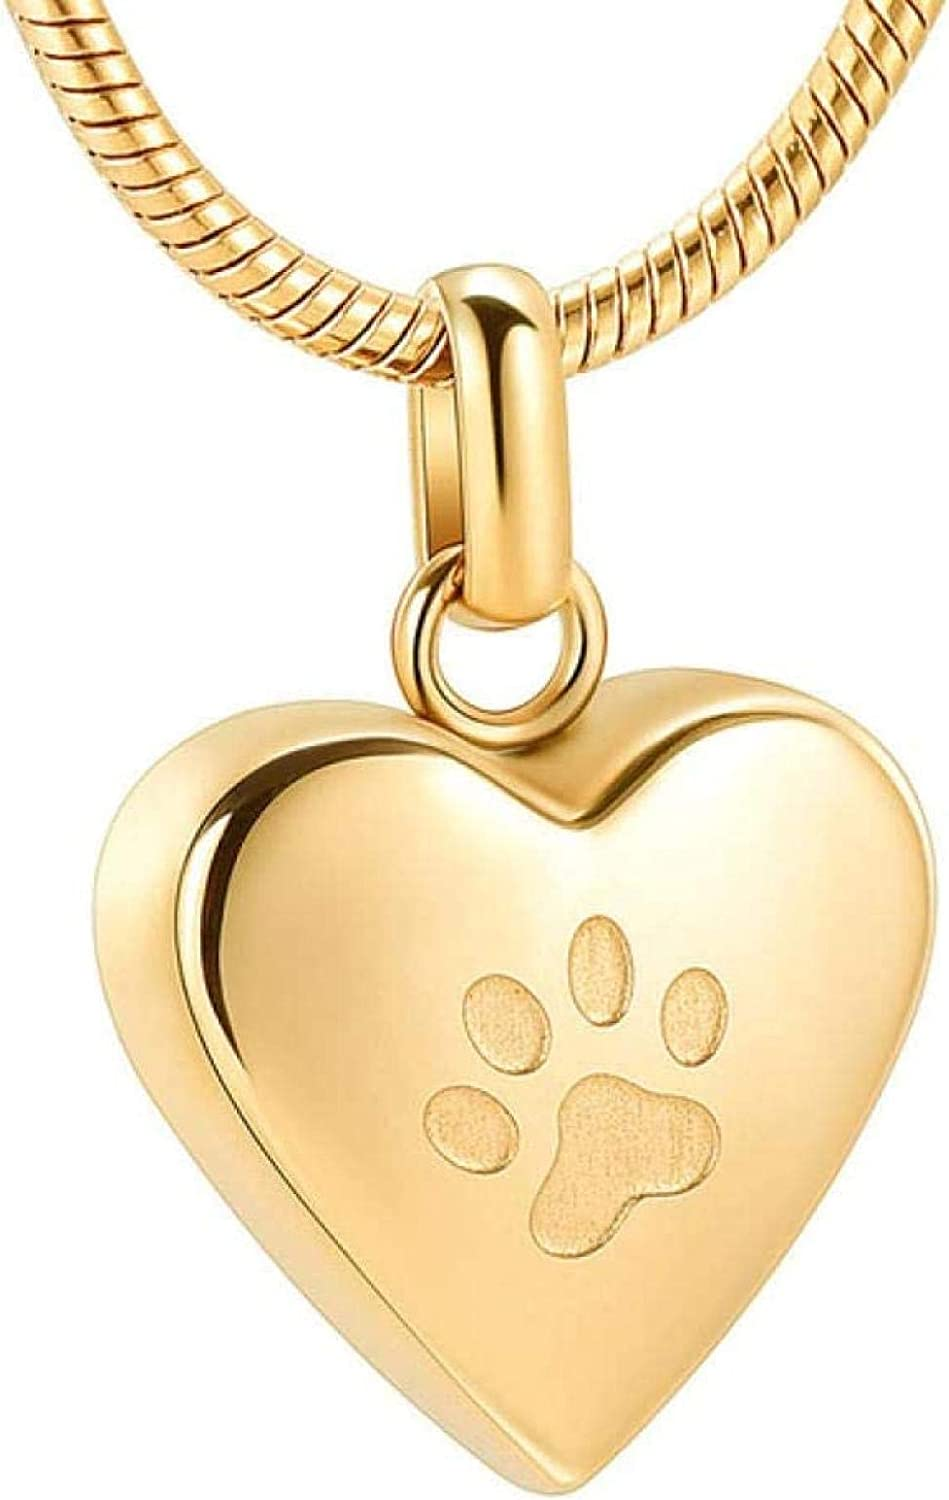 Memorial Cremation Cremation Jewelry pet Memorial Necklace Paw Print Funeral Ashes Urn Necklace Keepsake Cremation Jewelry Dog/Cats Ashes